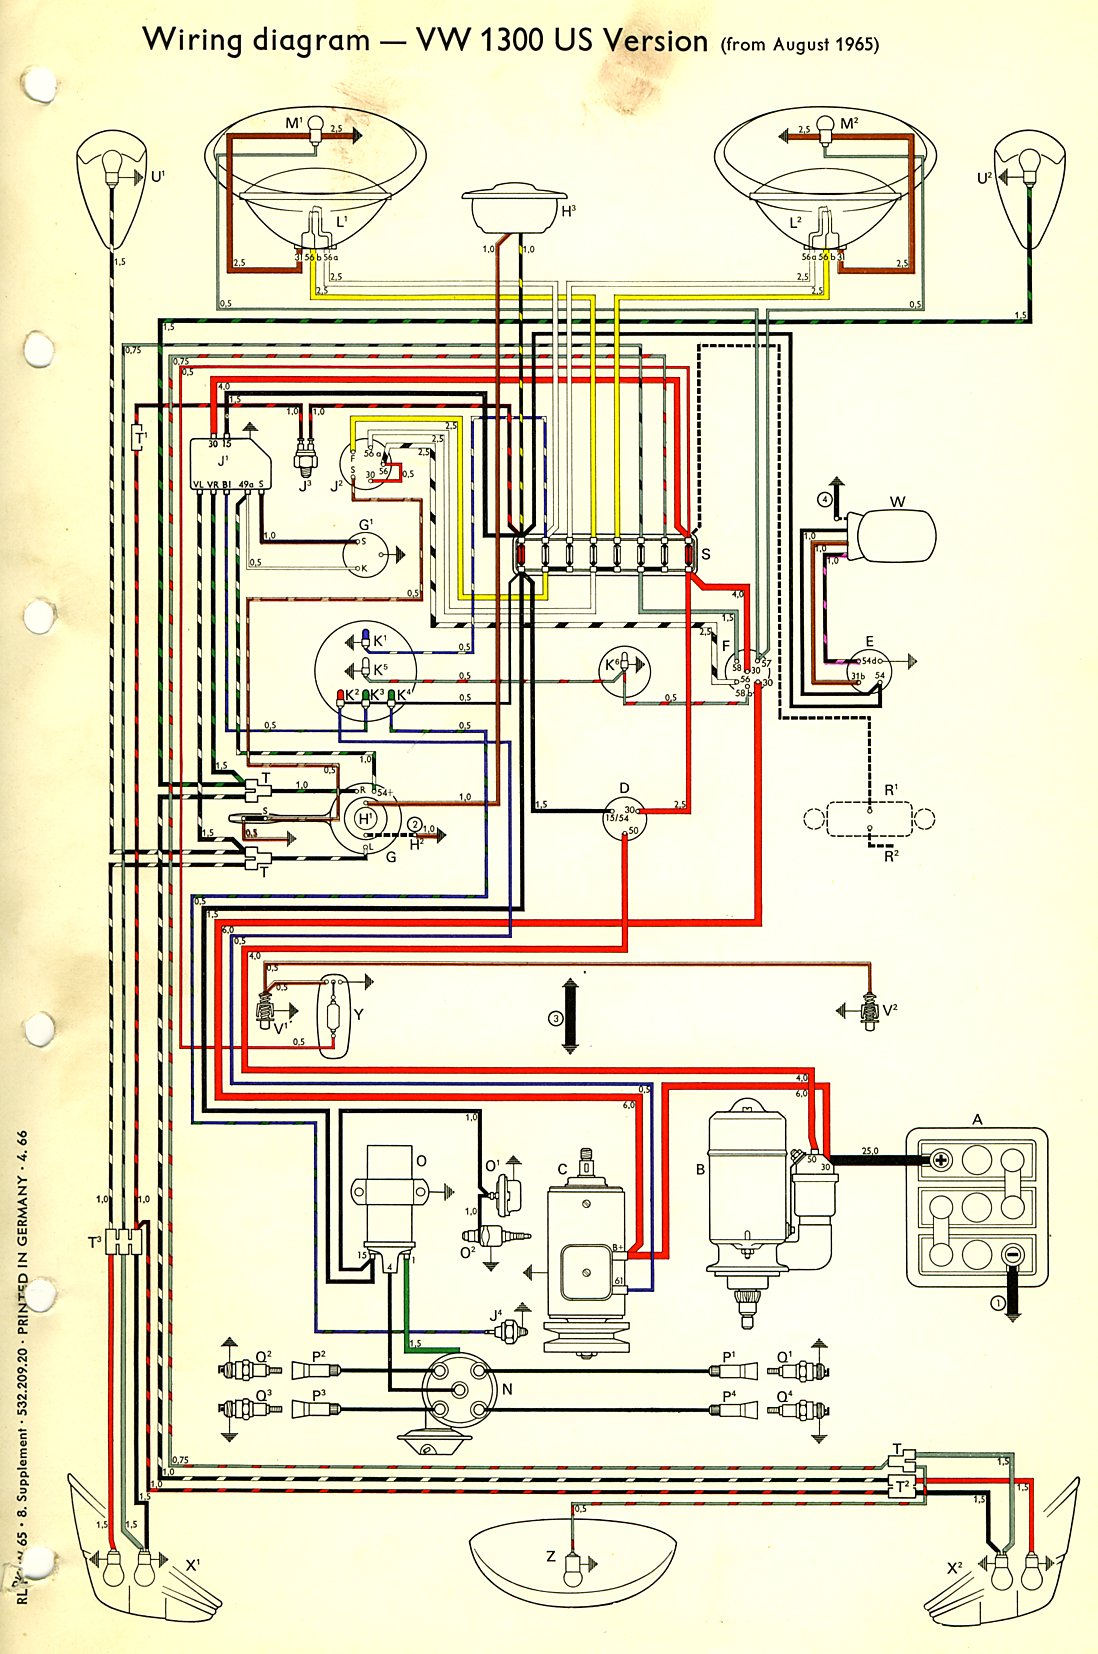 starter wiring diagram 68 vw bug wiring diagram for light switch u2022 rh prestonfarmmotors co 1974 VW Super Beetle Alternator Diagram 1973 Super Beetle Heater Diagram